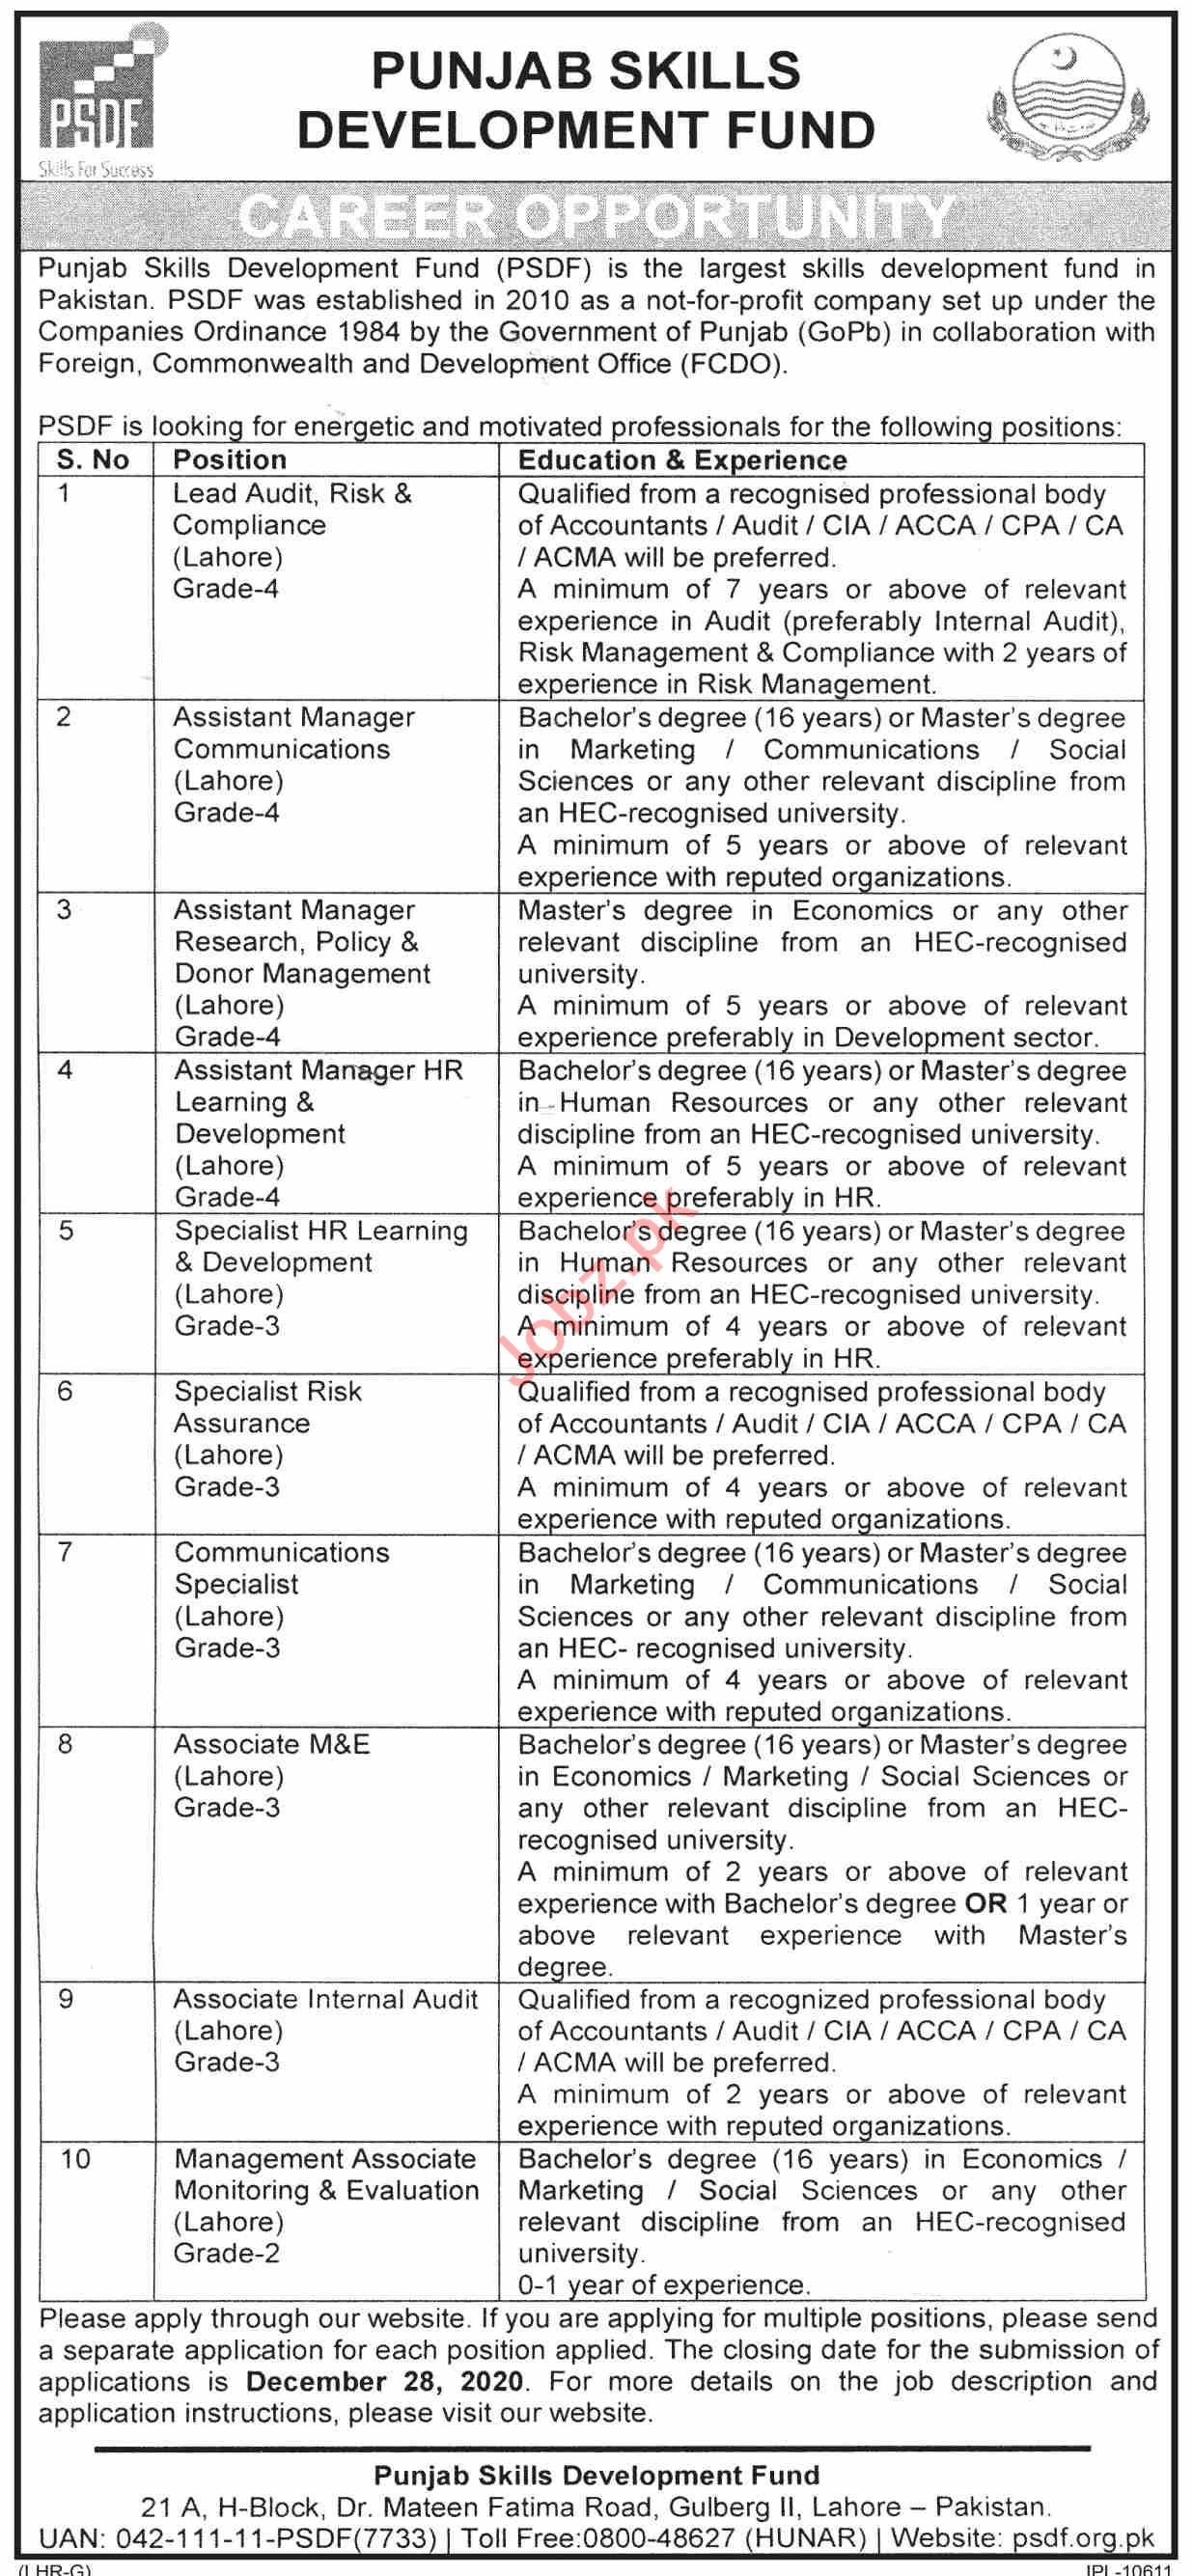 PSDF Foreign Commonwealth & Development Punjab Jobs 2021